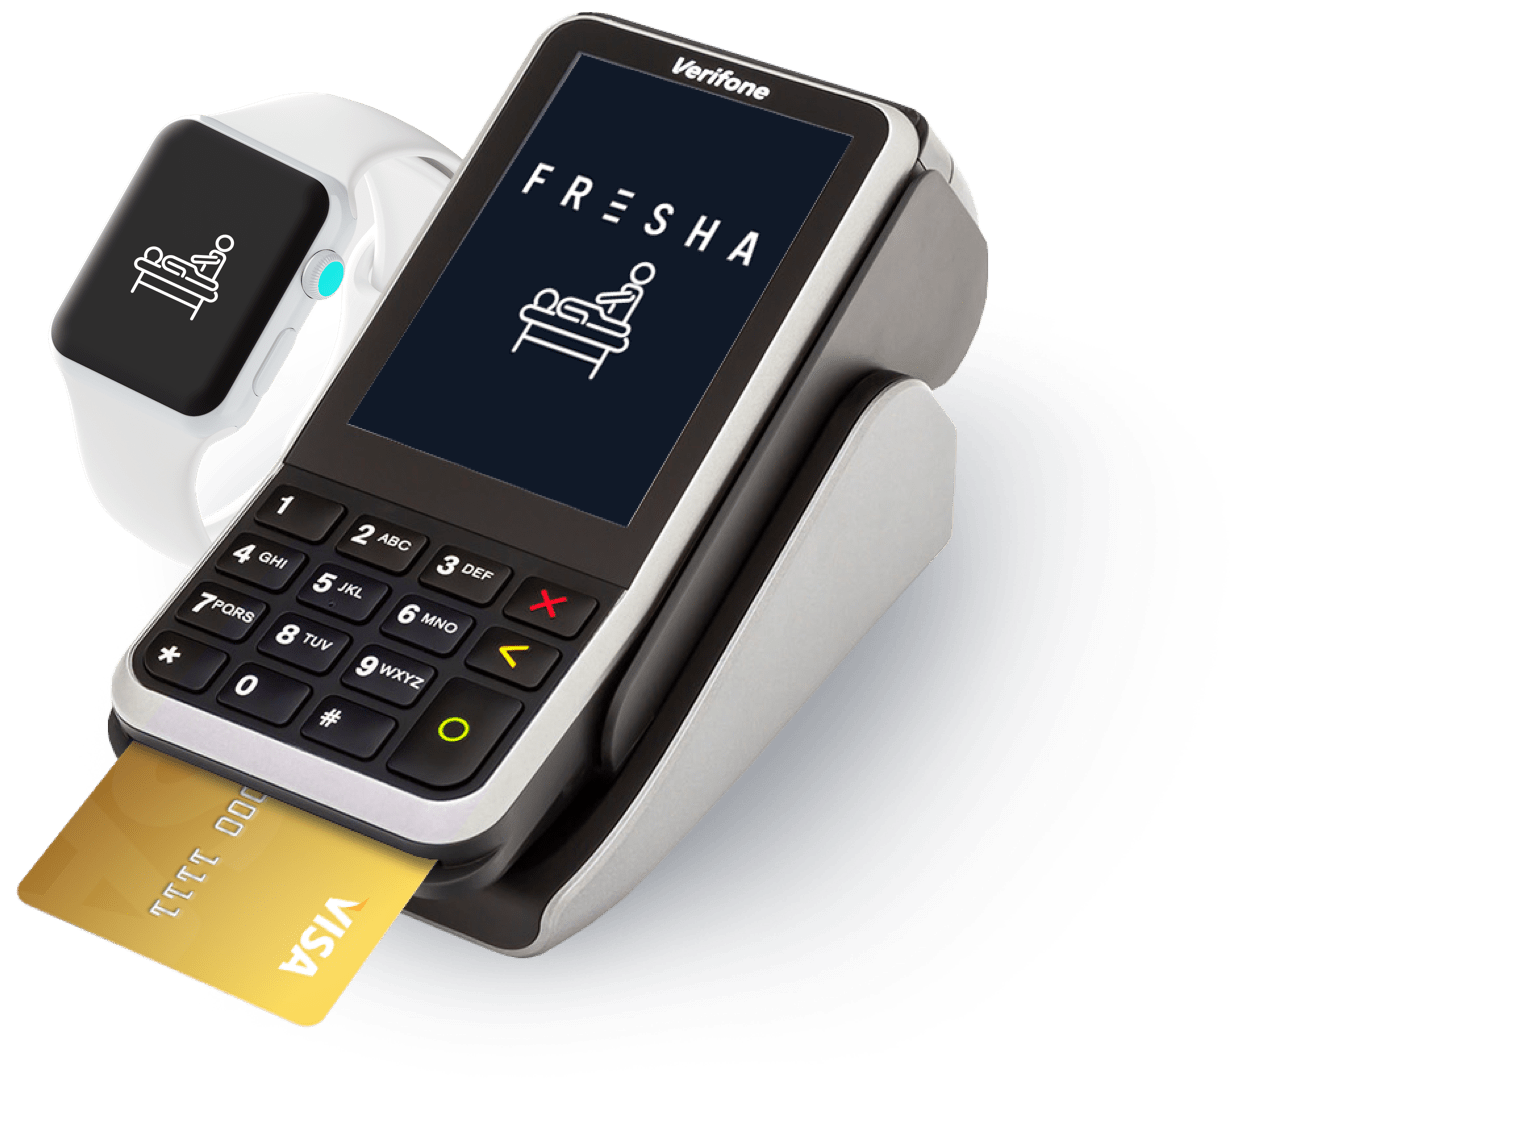 Massage payment terminal, payment processing and online payments solution